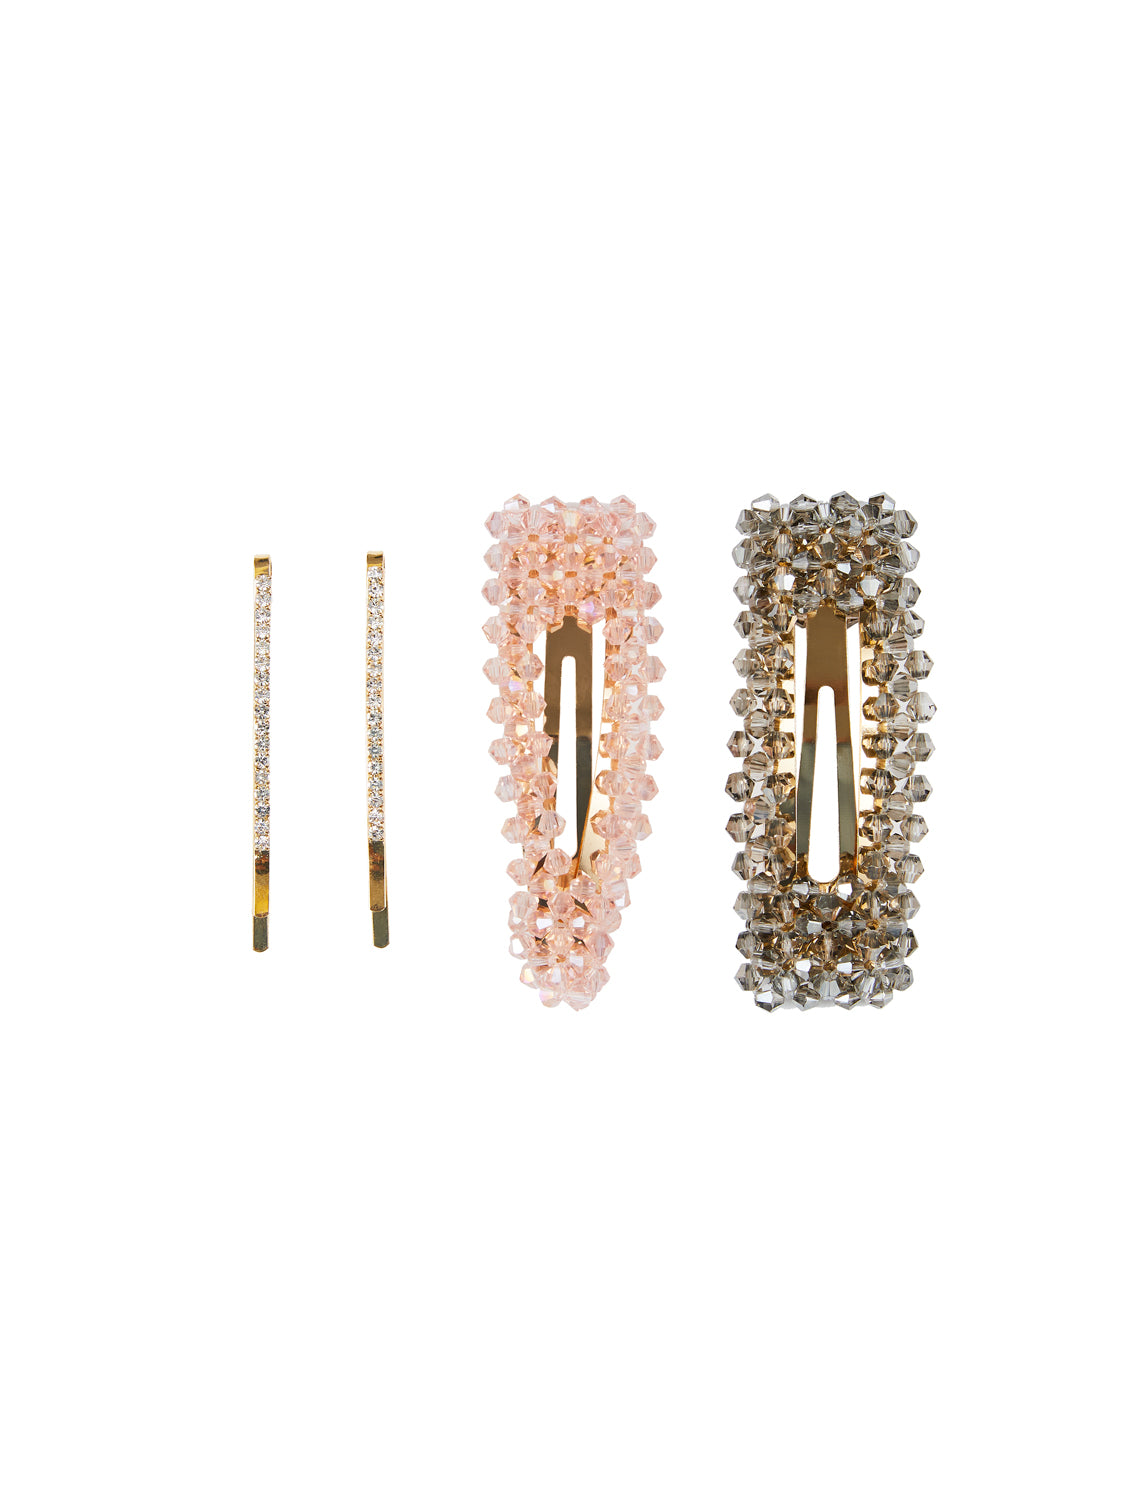 4-Piece Crystal Barrettes